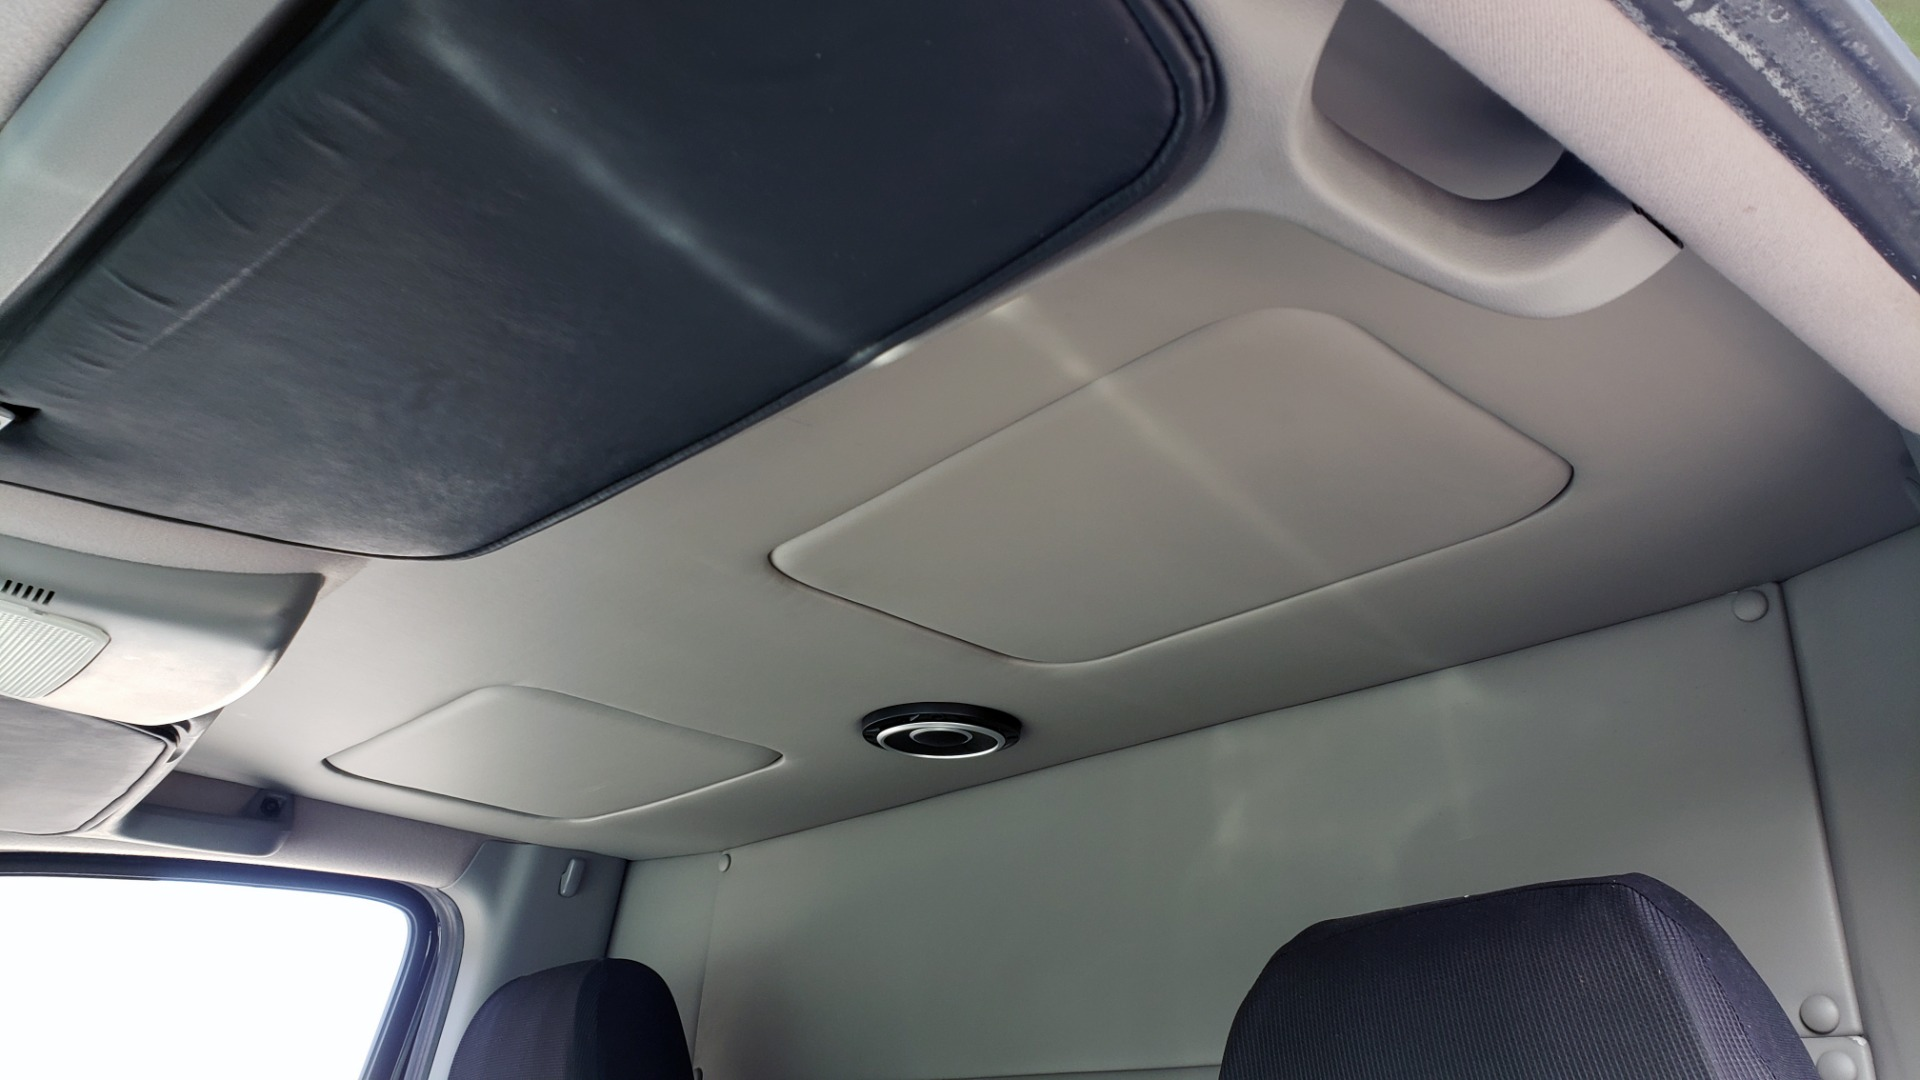 Used 2013 Mercedes-Benz SPRINTER CARGO VAN EXT / OFFICE ON WHEELS / FLT SCREEN TV / LOUNGE for sale Sold at Formula Imports in Charlotte NC 28227 14